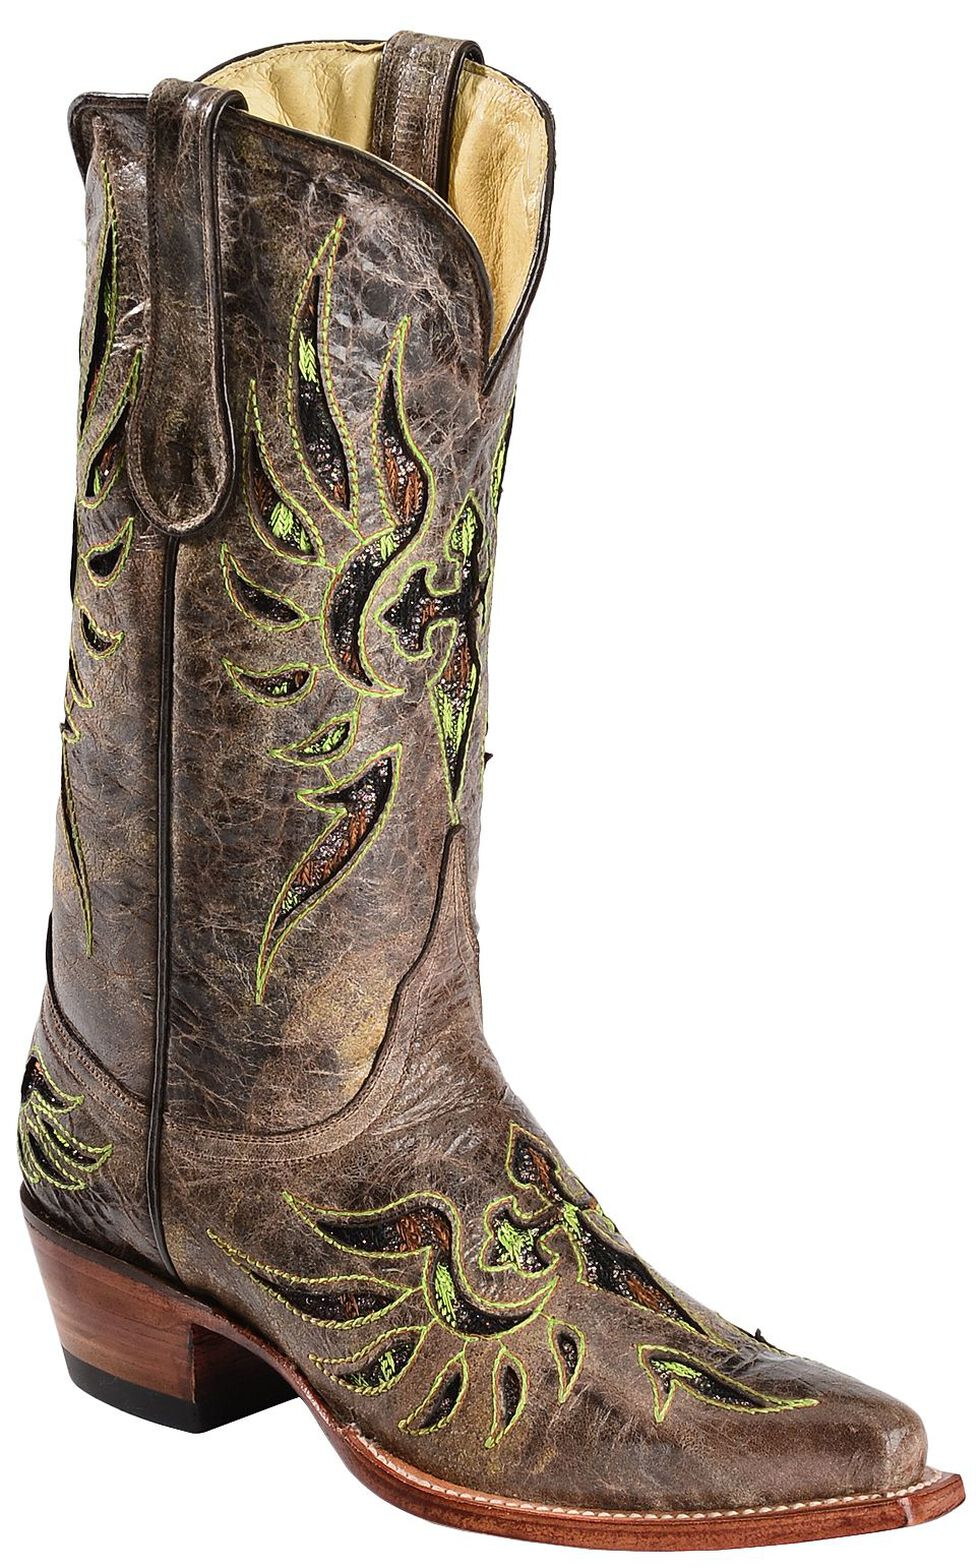 Ferrini Fabric Glitter Inlay Cross Distressed Cowgirl Boots - Snip Toe, Brown, hi-res